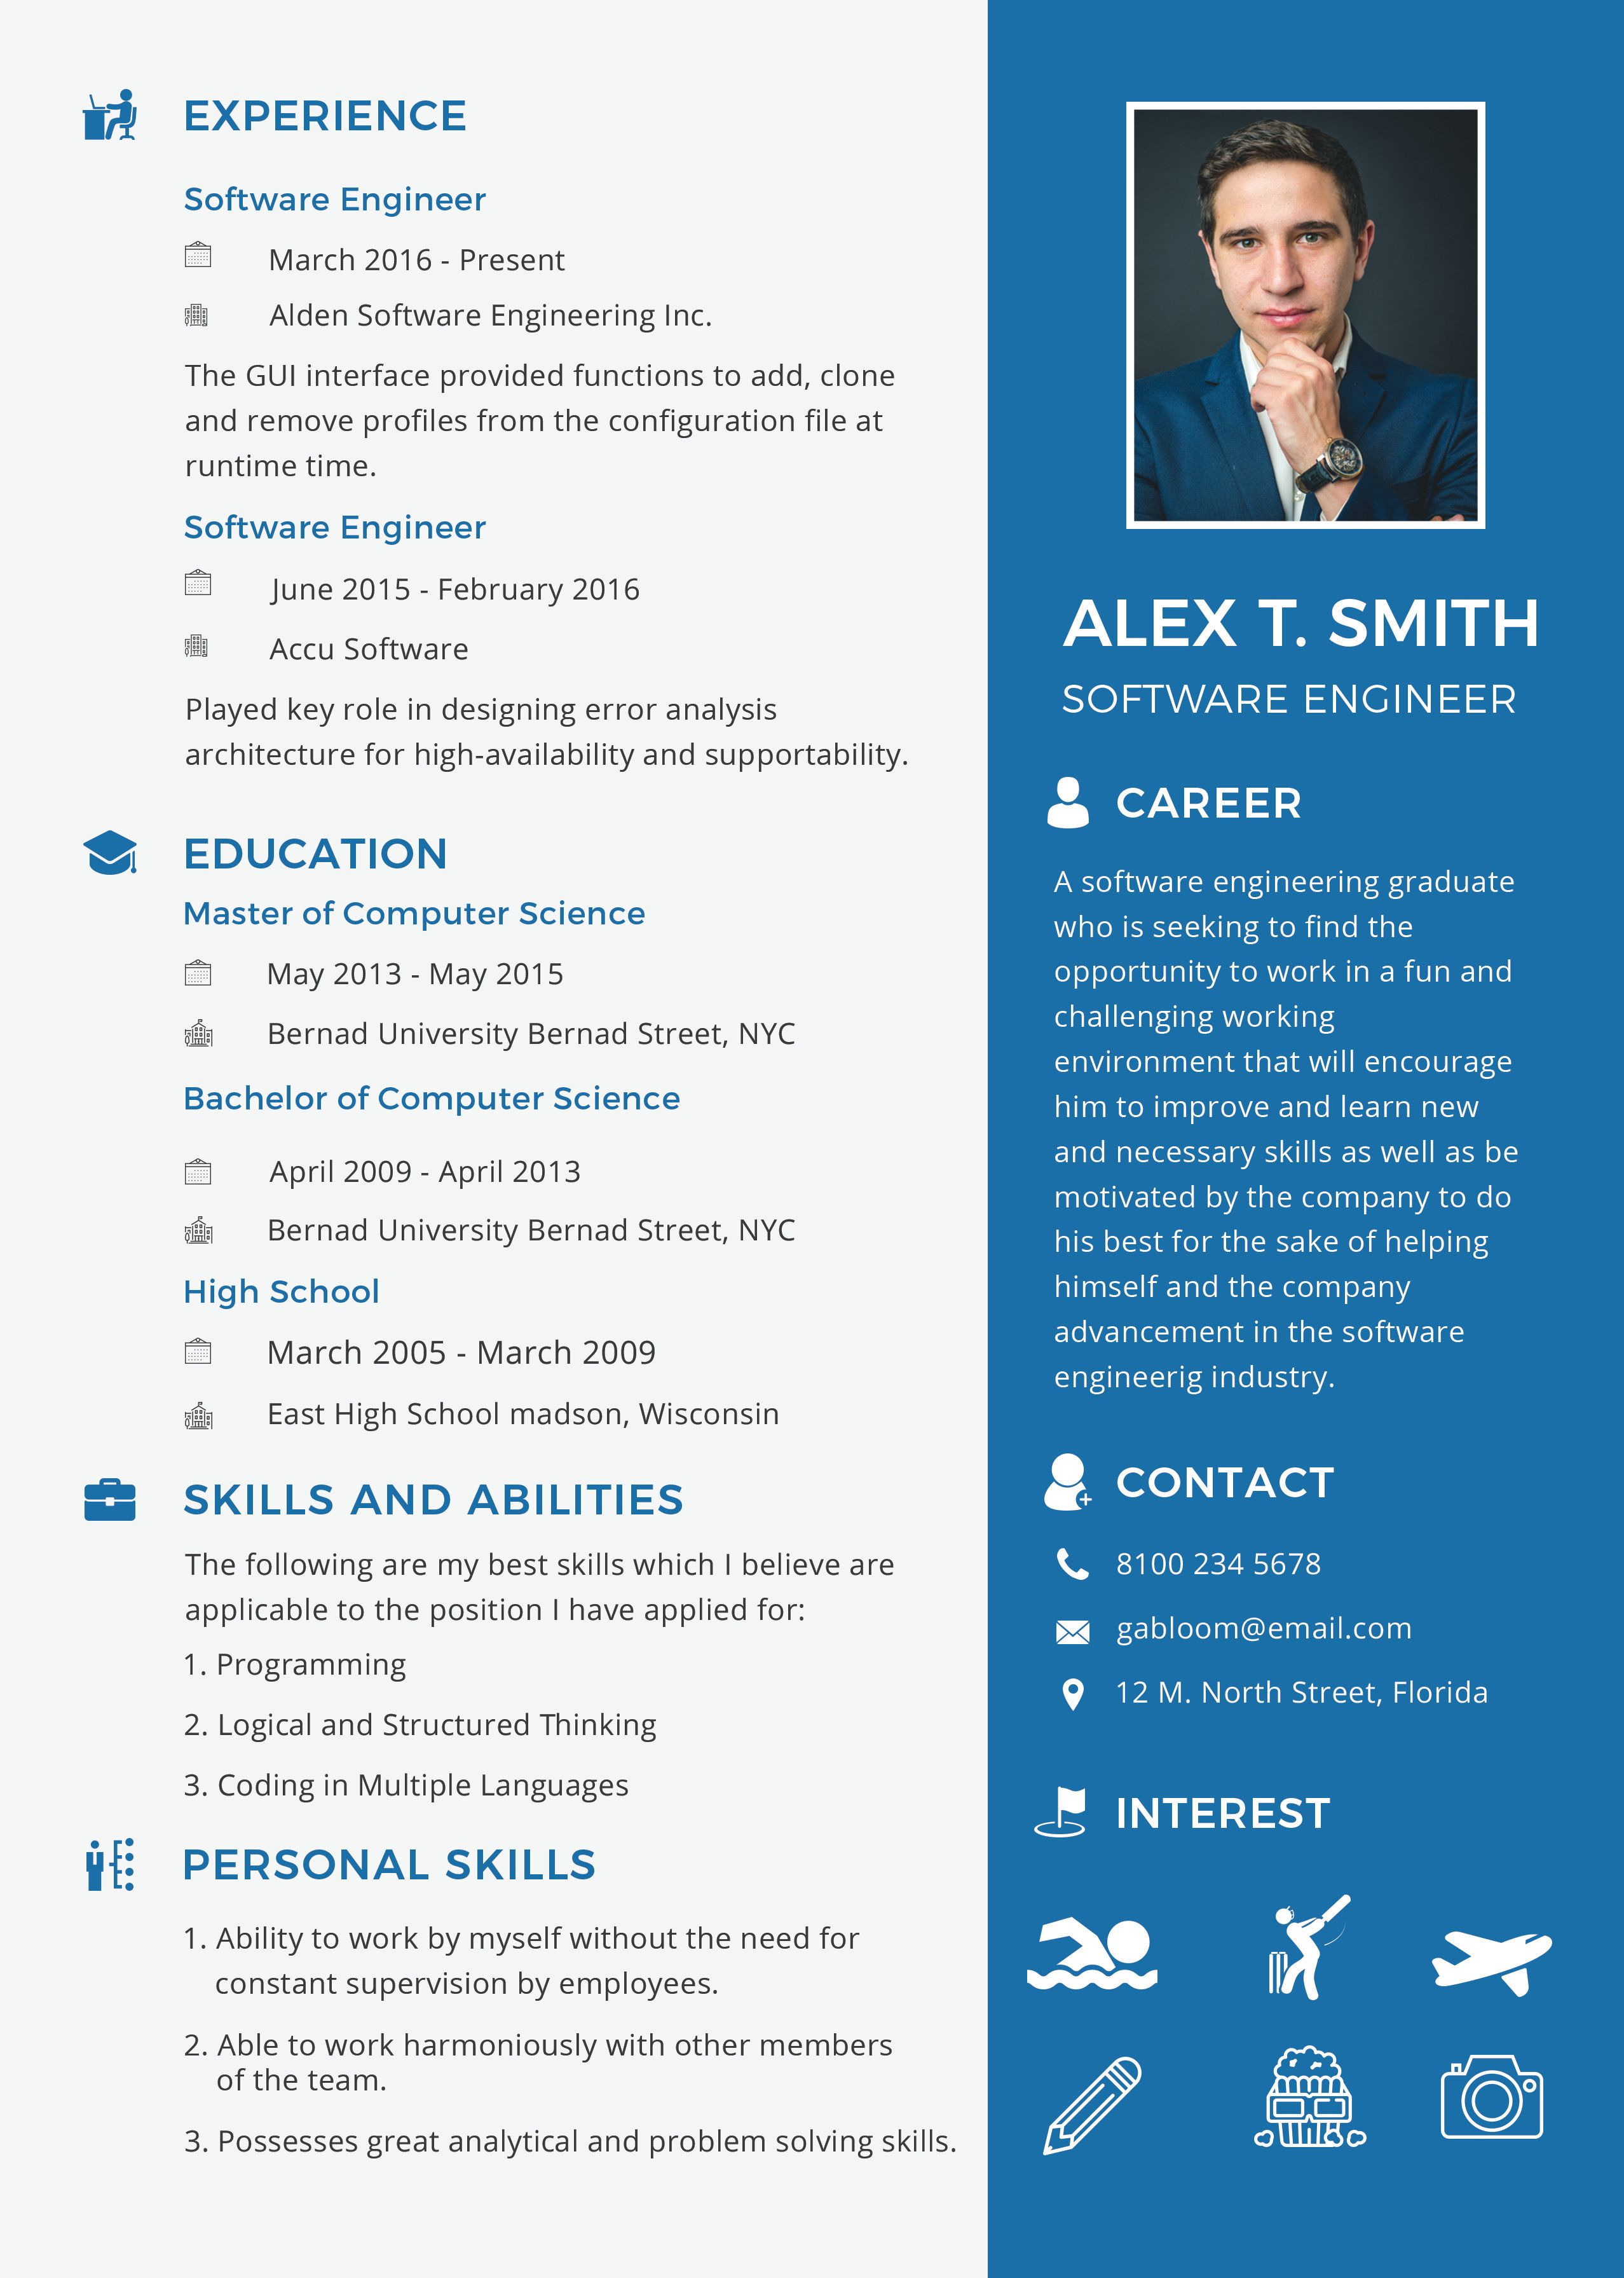 Free Resume for Software Engineer Fresher Resume